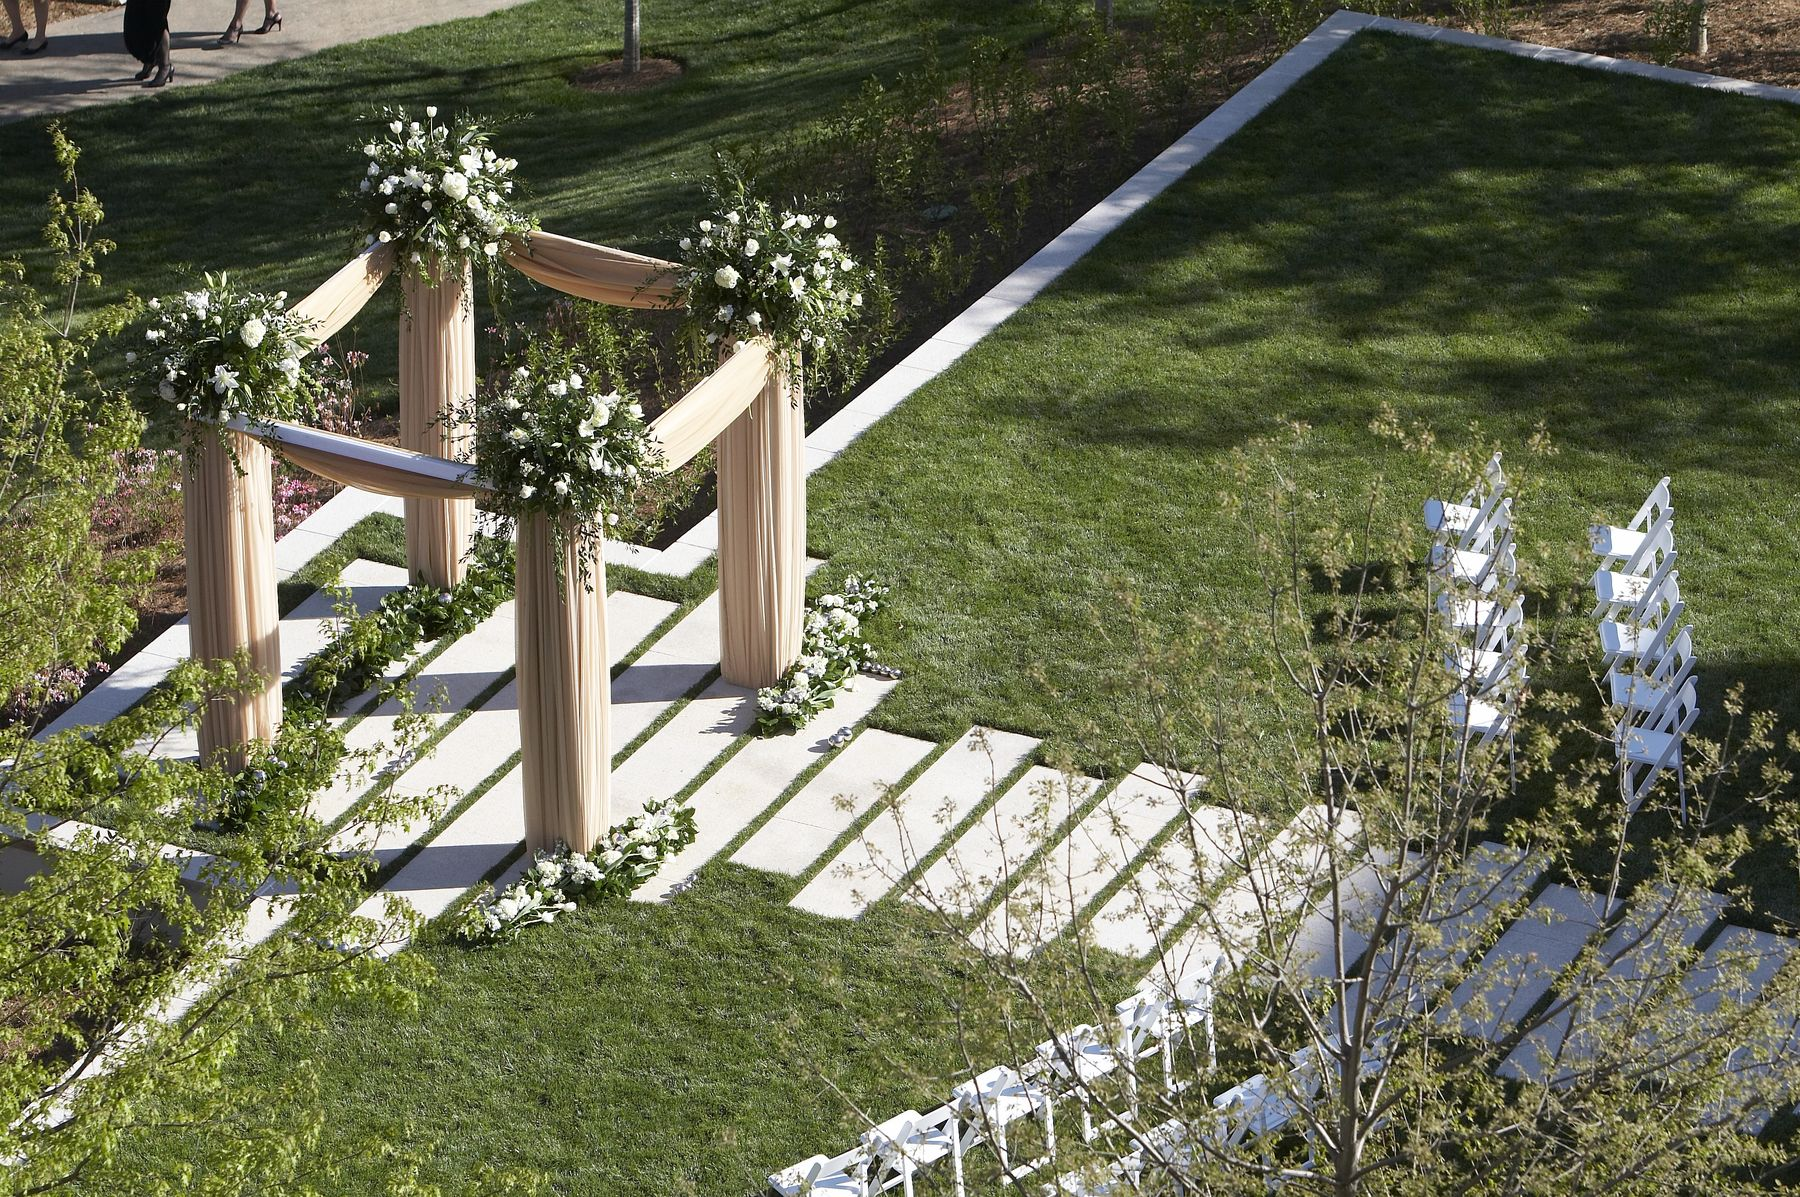 wedding alter with floral decorations